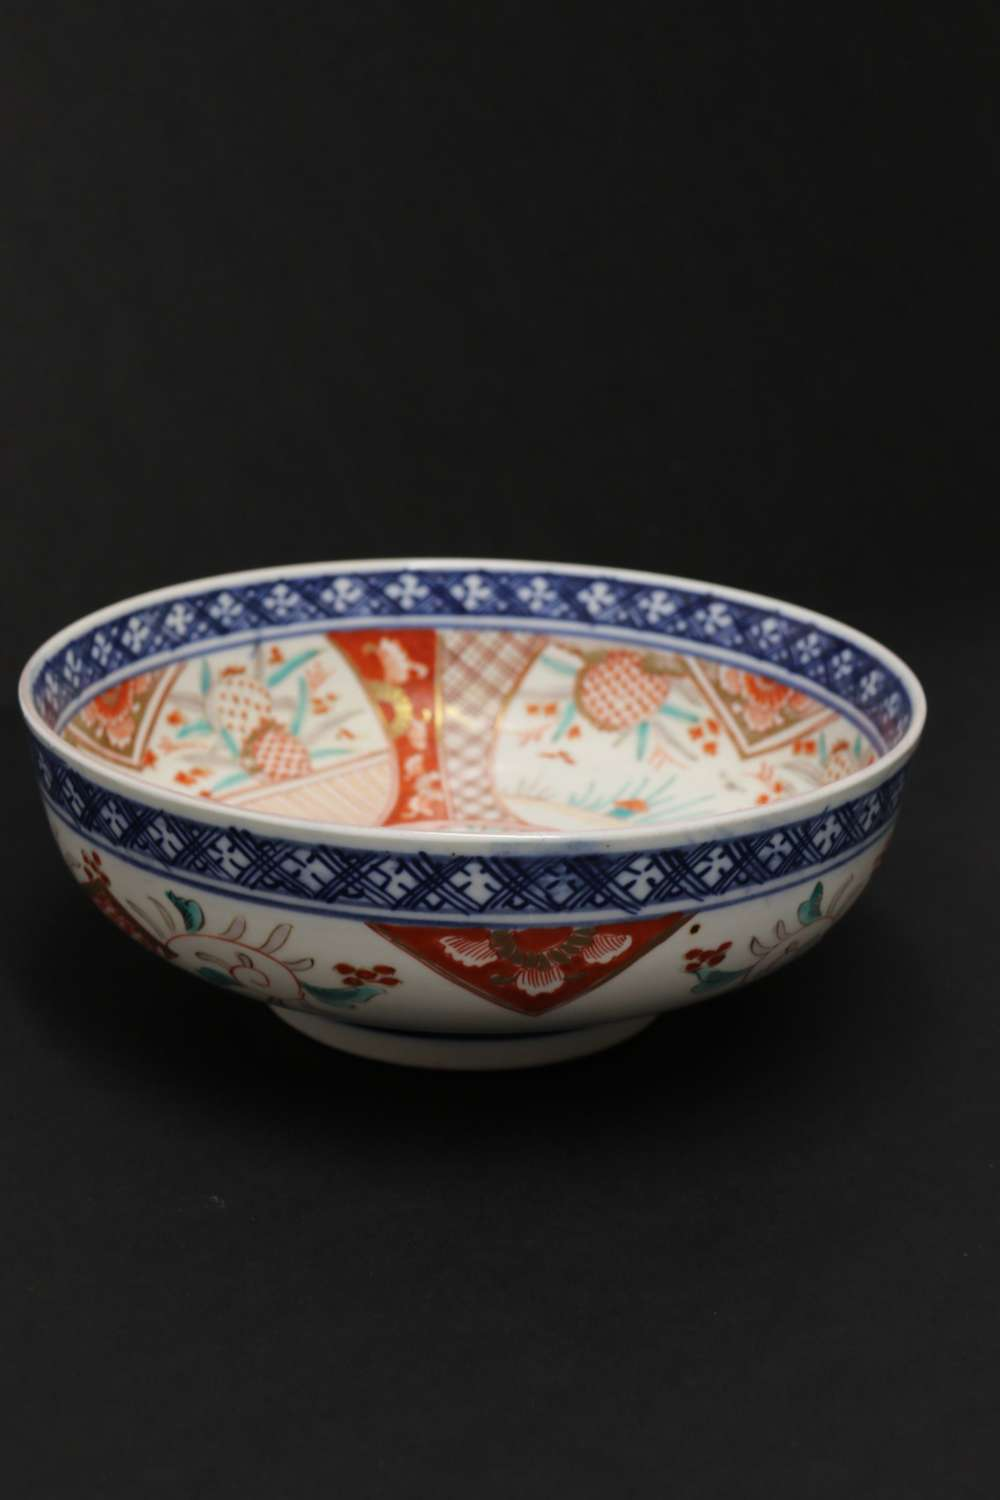 A Japanese Meiji Period Porcelain Bowl Hand Painted With An Imari Pattern Design.